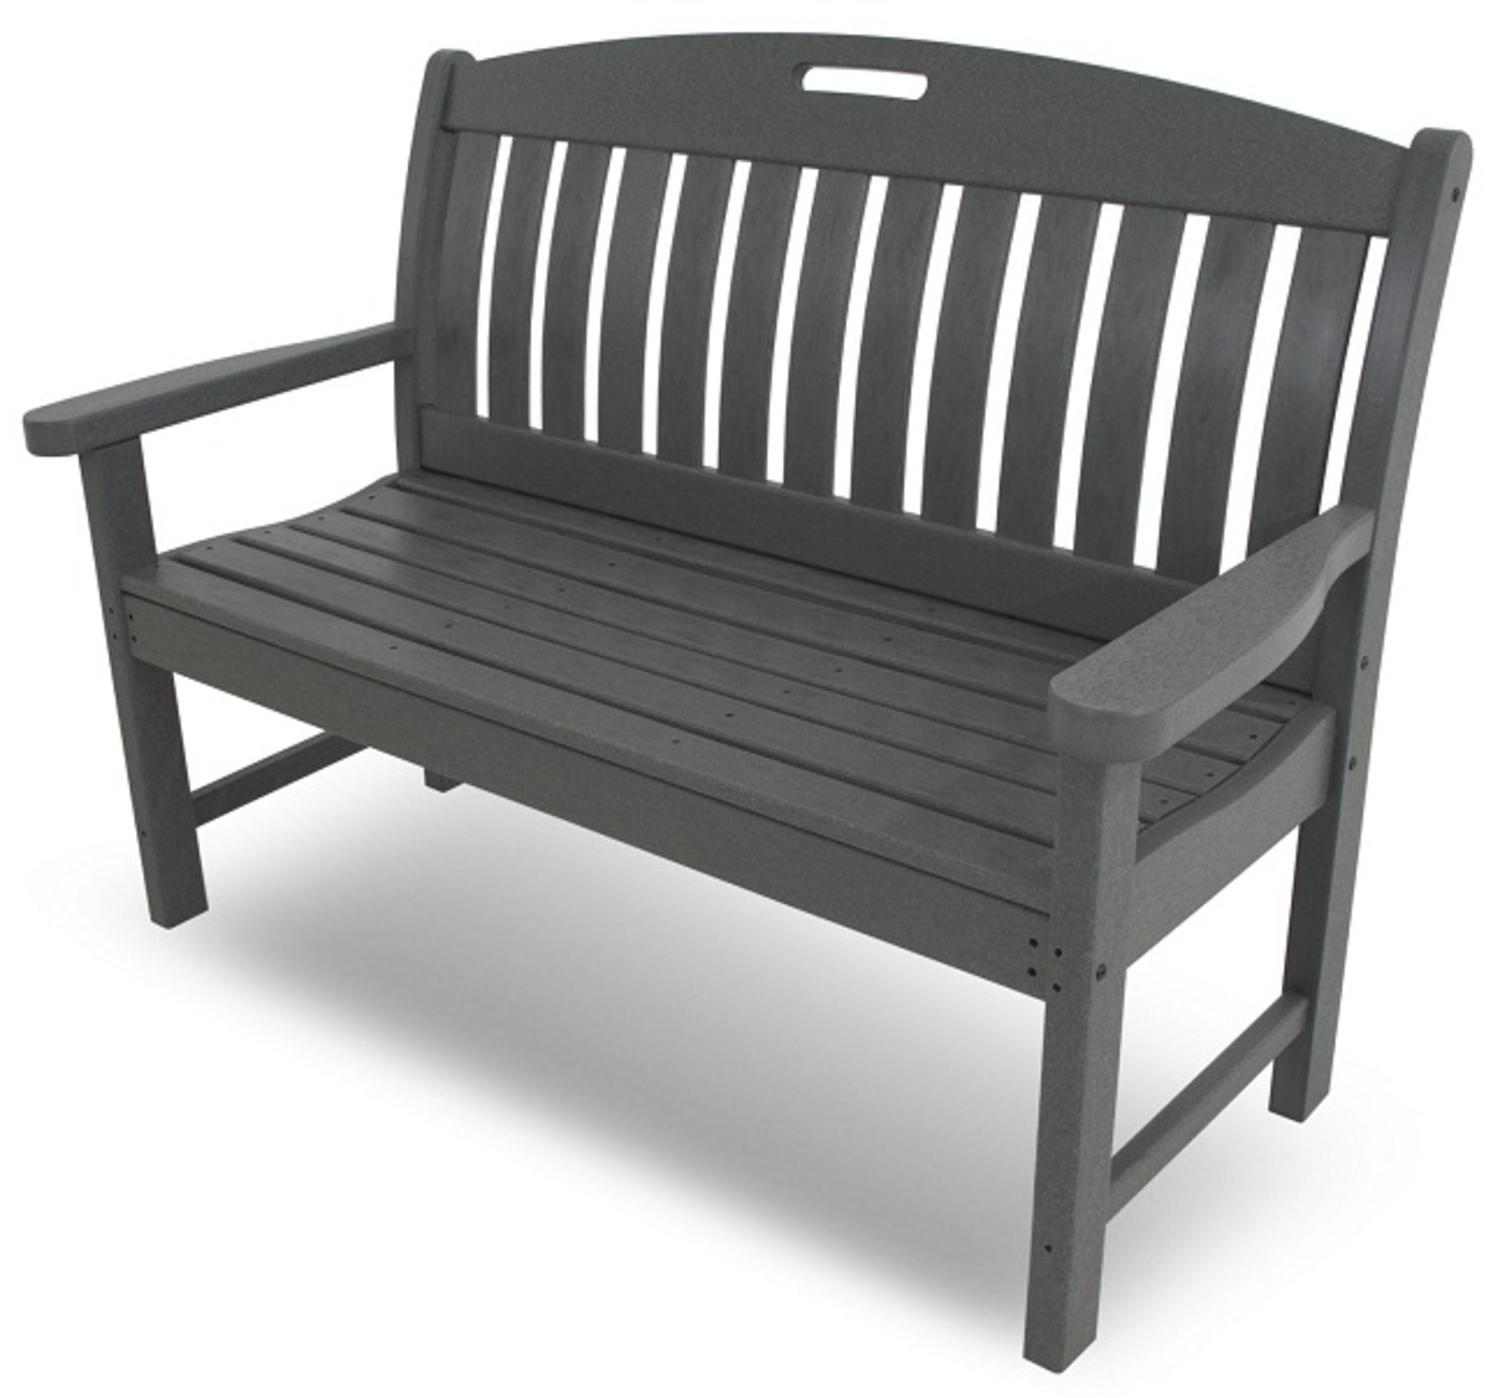 "51.75"" Earth-Friendly Recycled Outdoor Patio Garden Bench - Slate Gray"